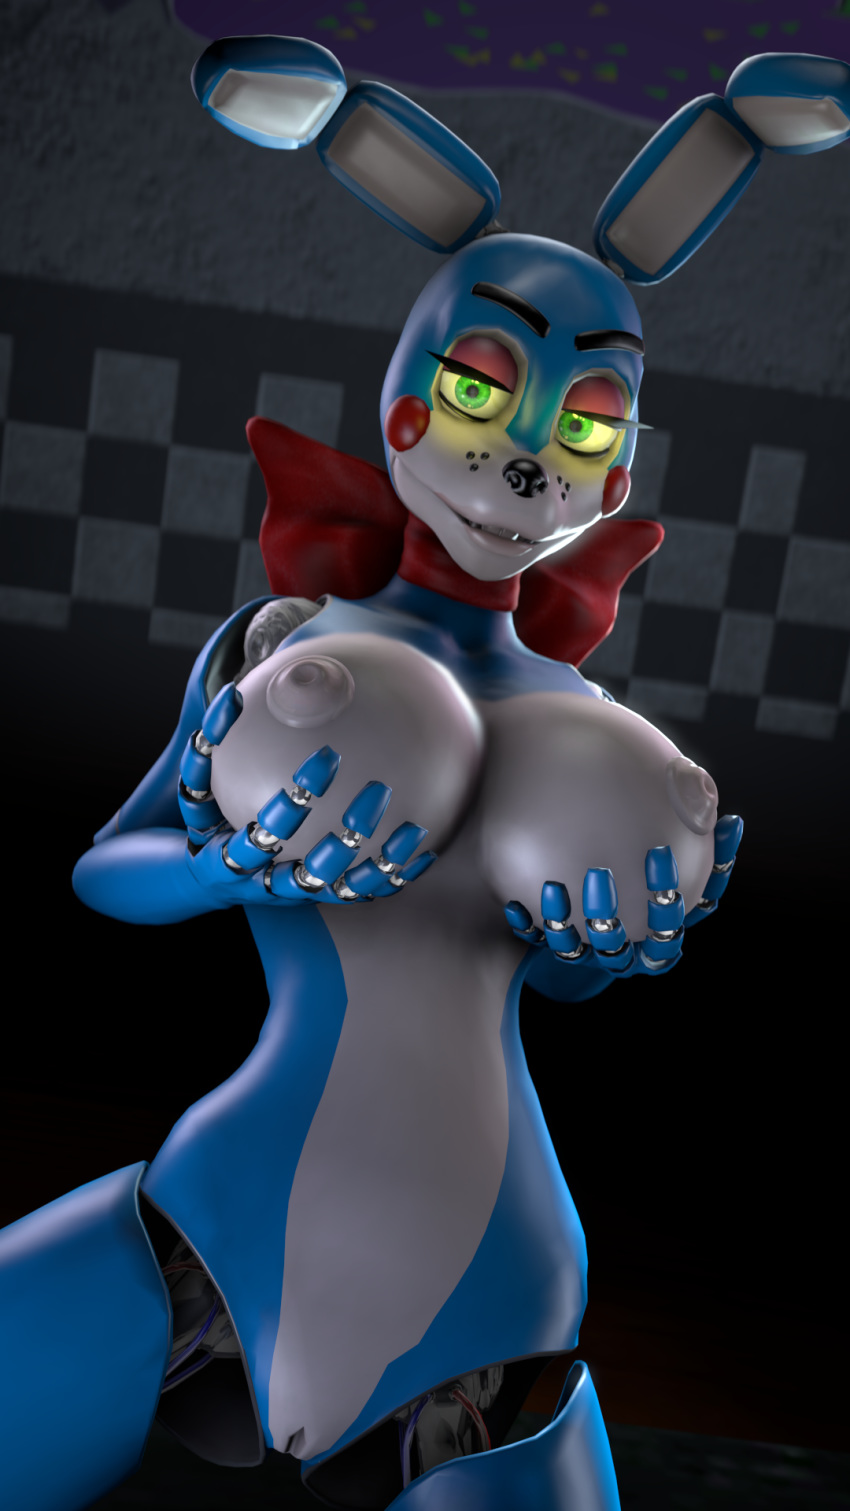 from freddy's bonnie toy of nights five pictures at Fart in the wind gif